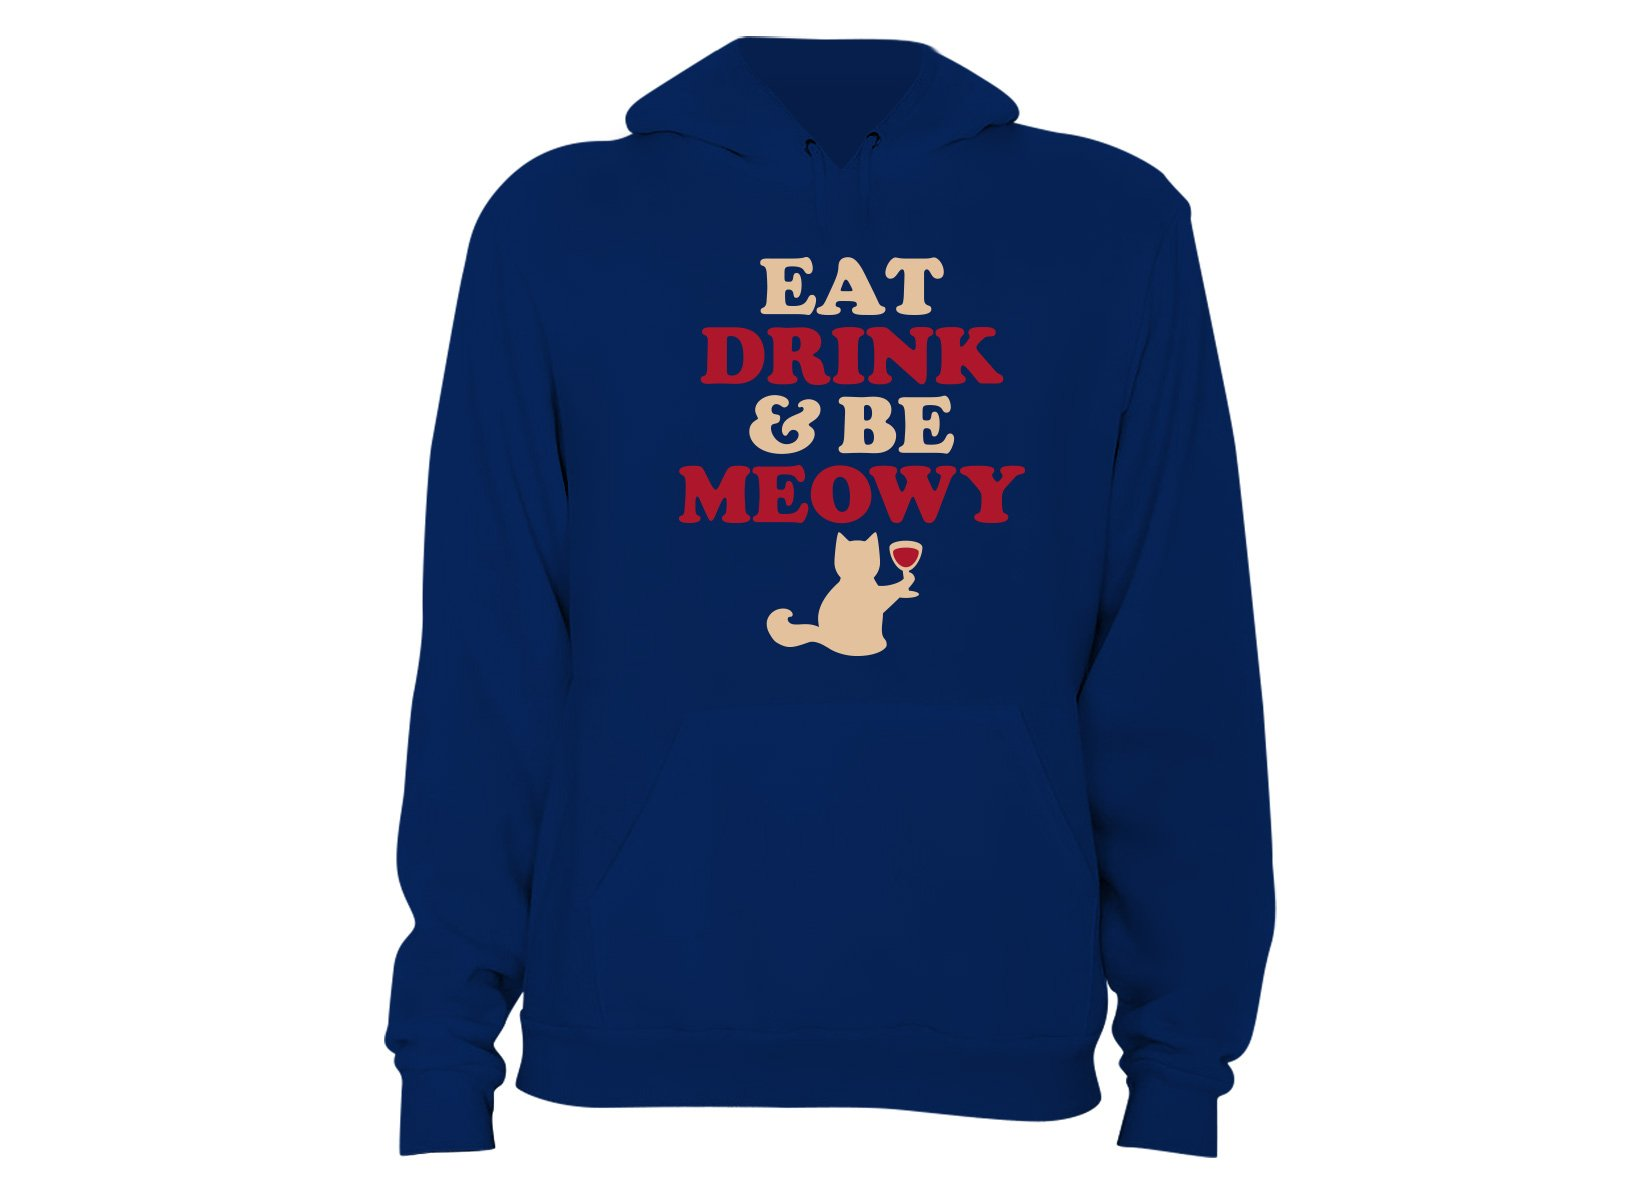 Eat Drink & Be Meowy on Hoodie